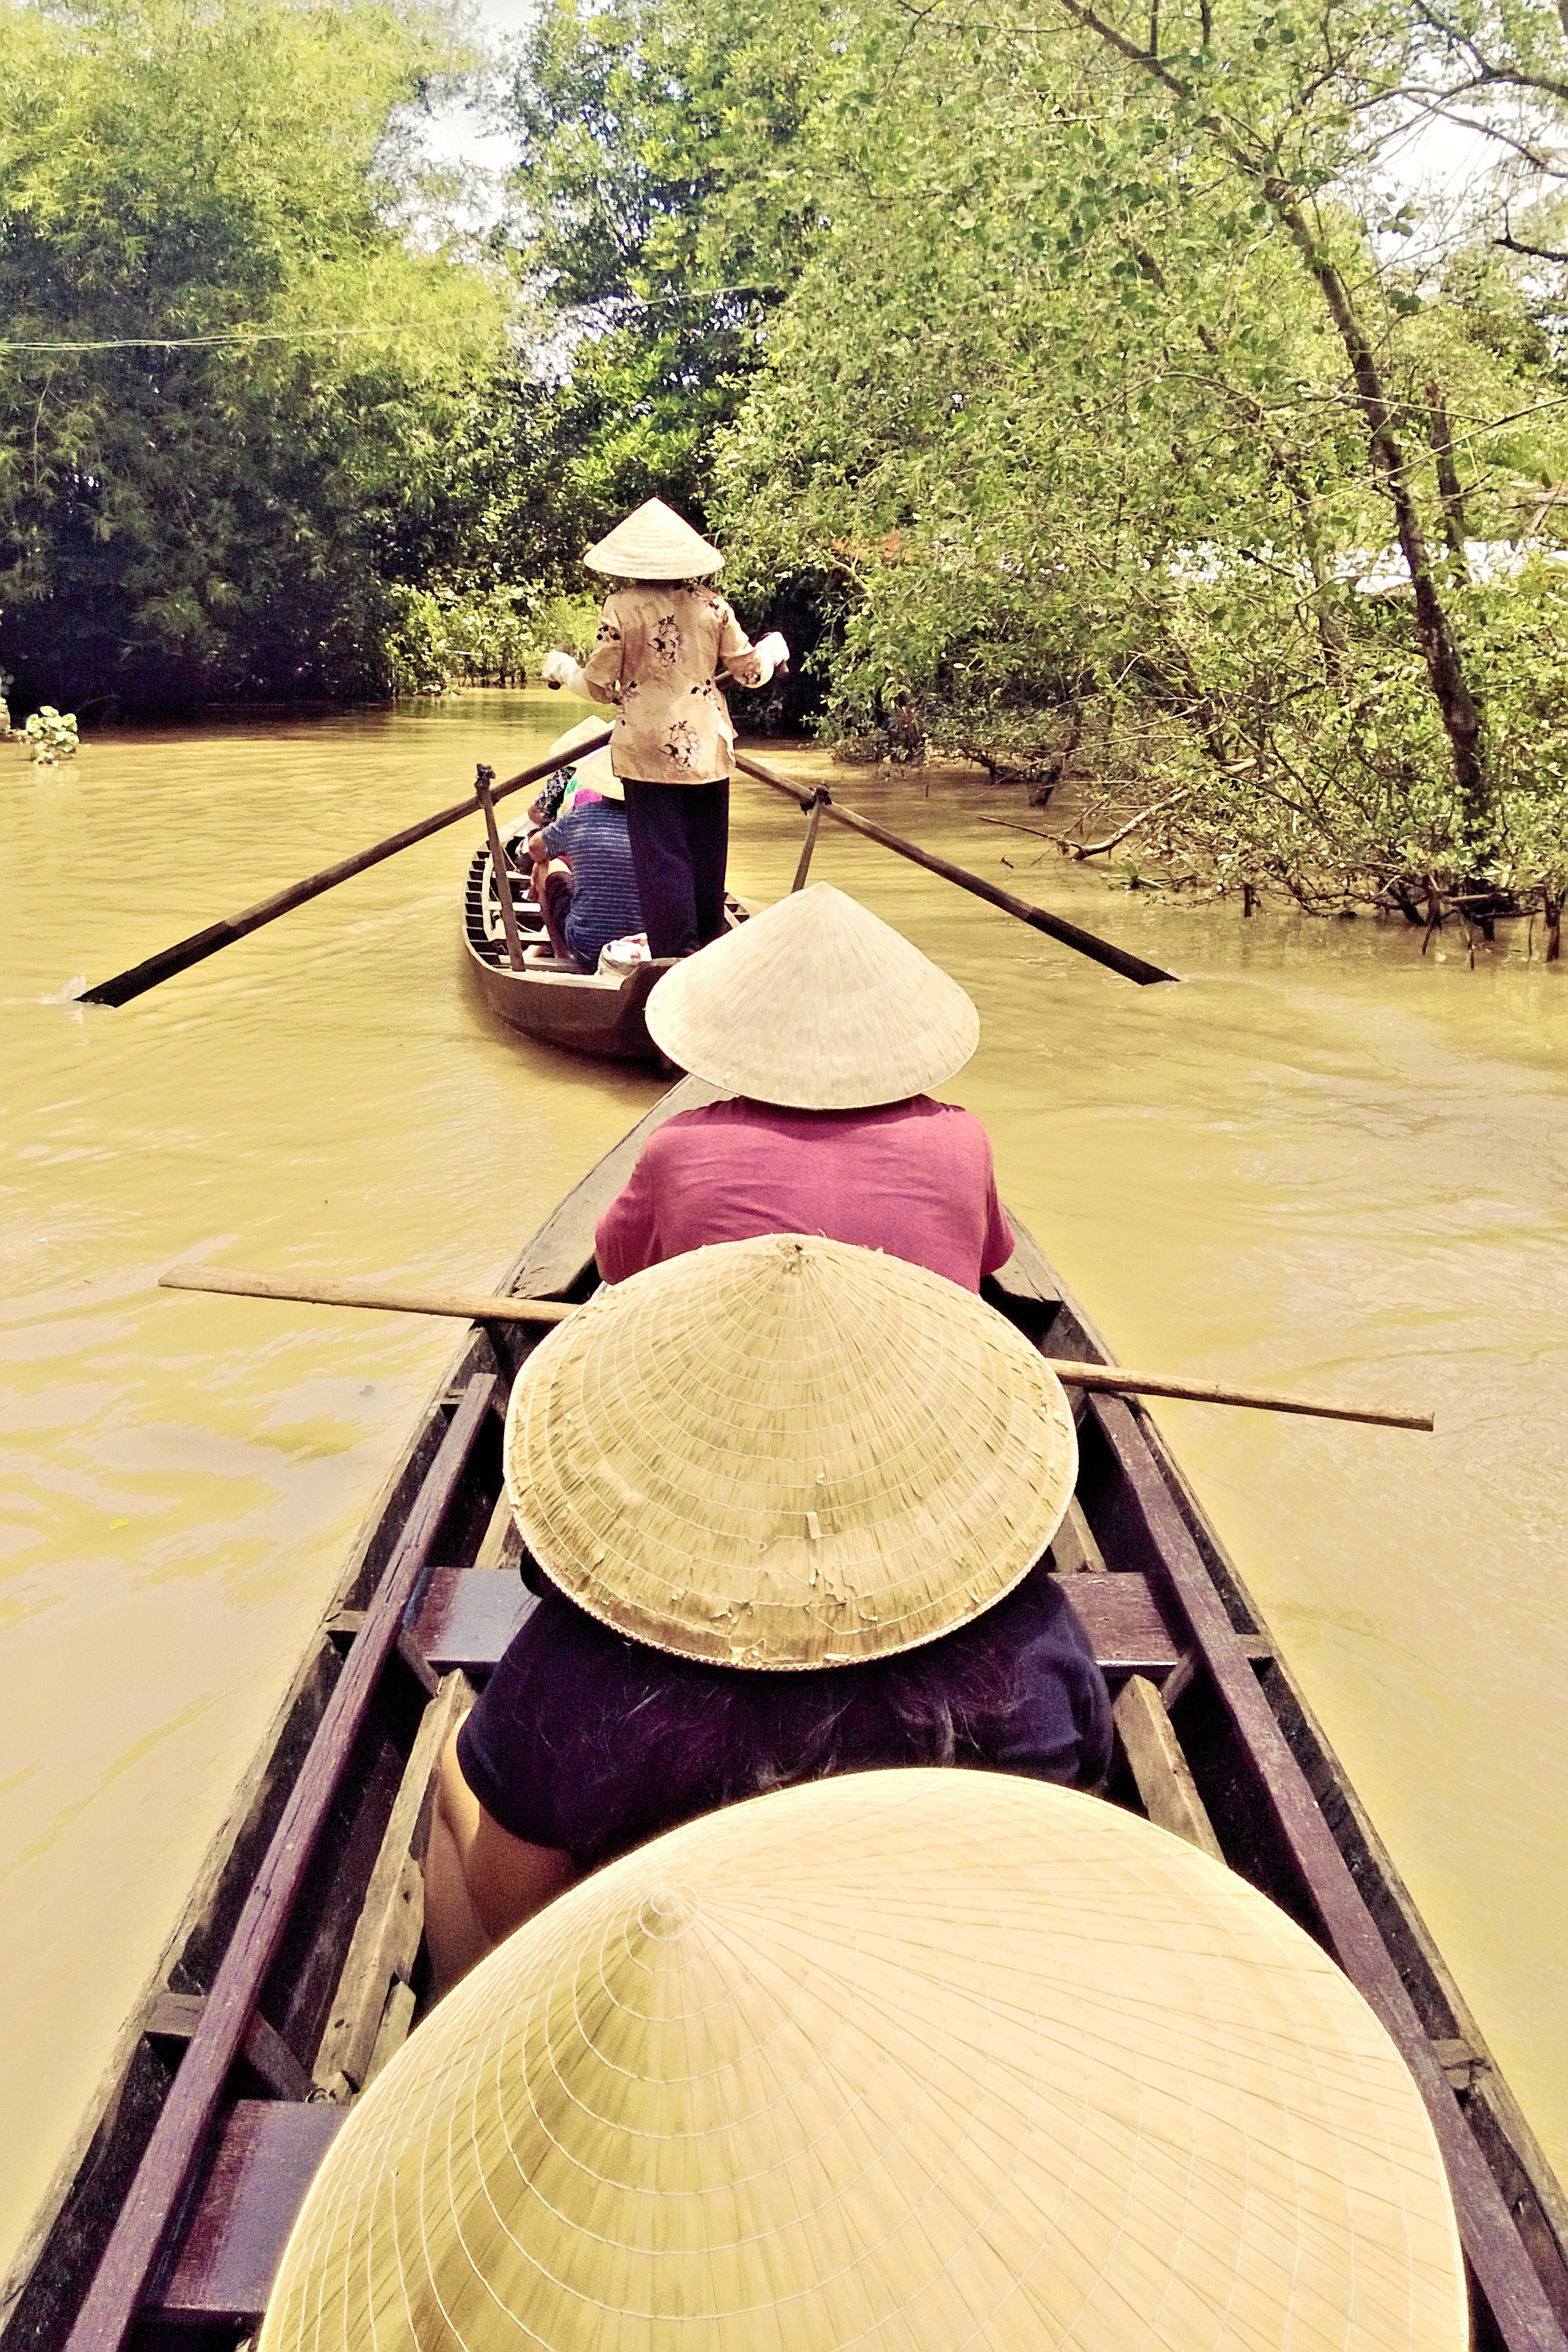 Adventures under the shade of a conical hat, Mekong river, Vietnam © Nisha D'Souza